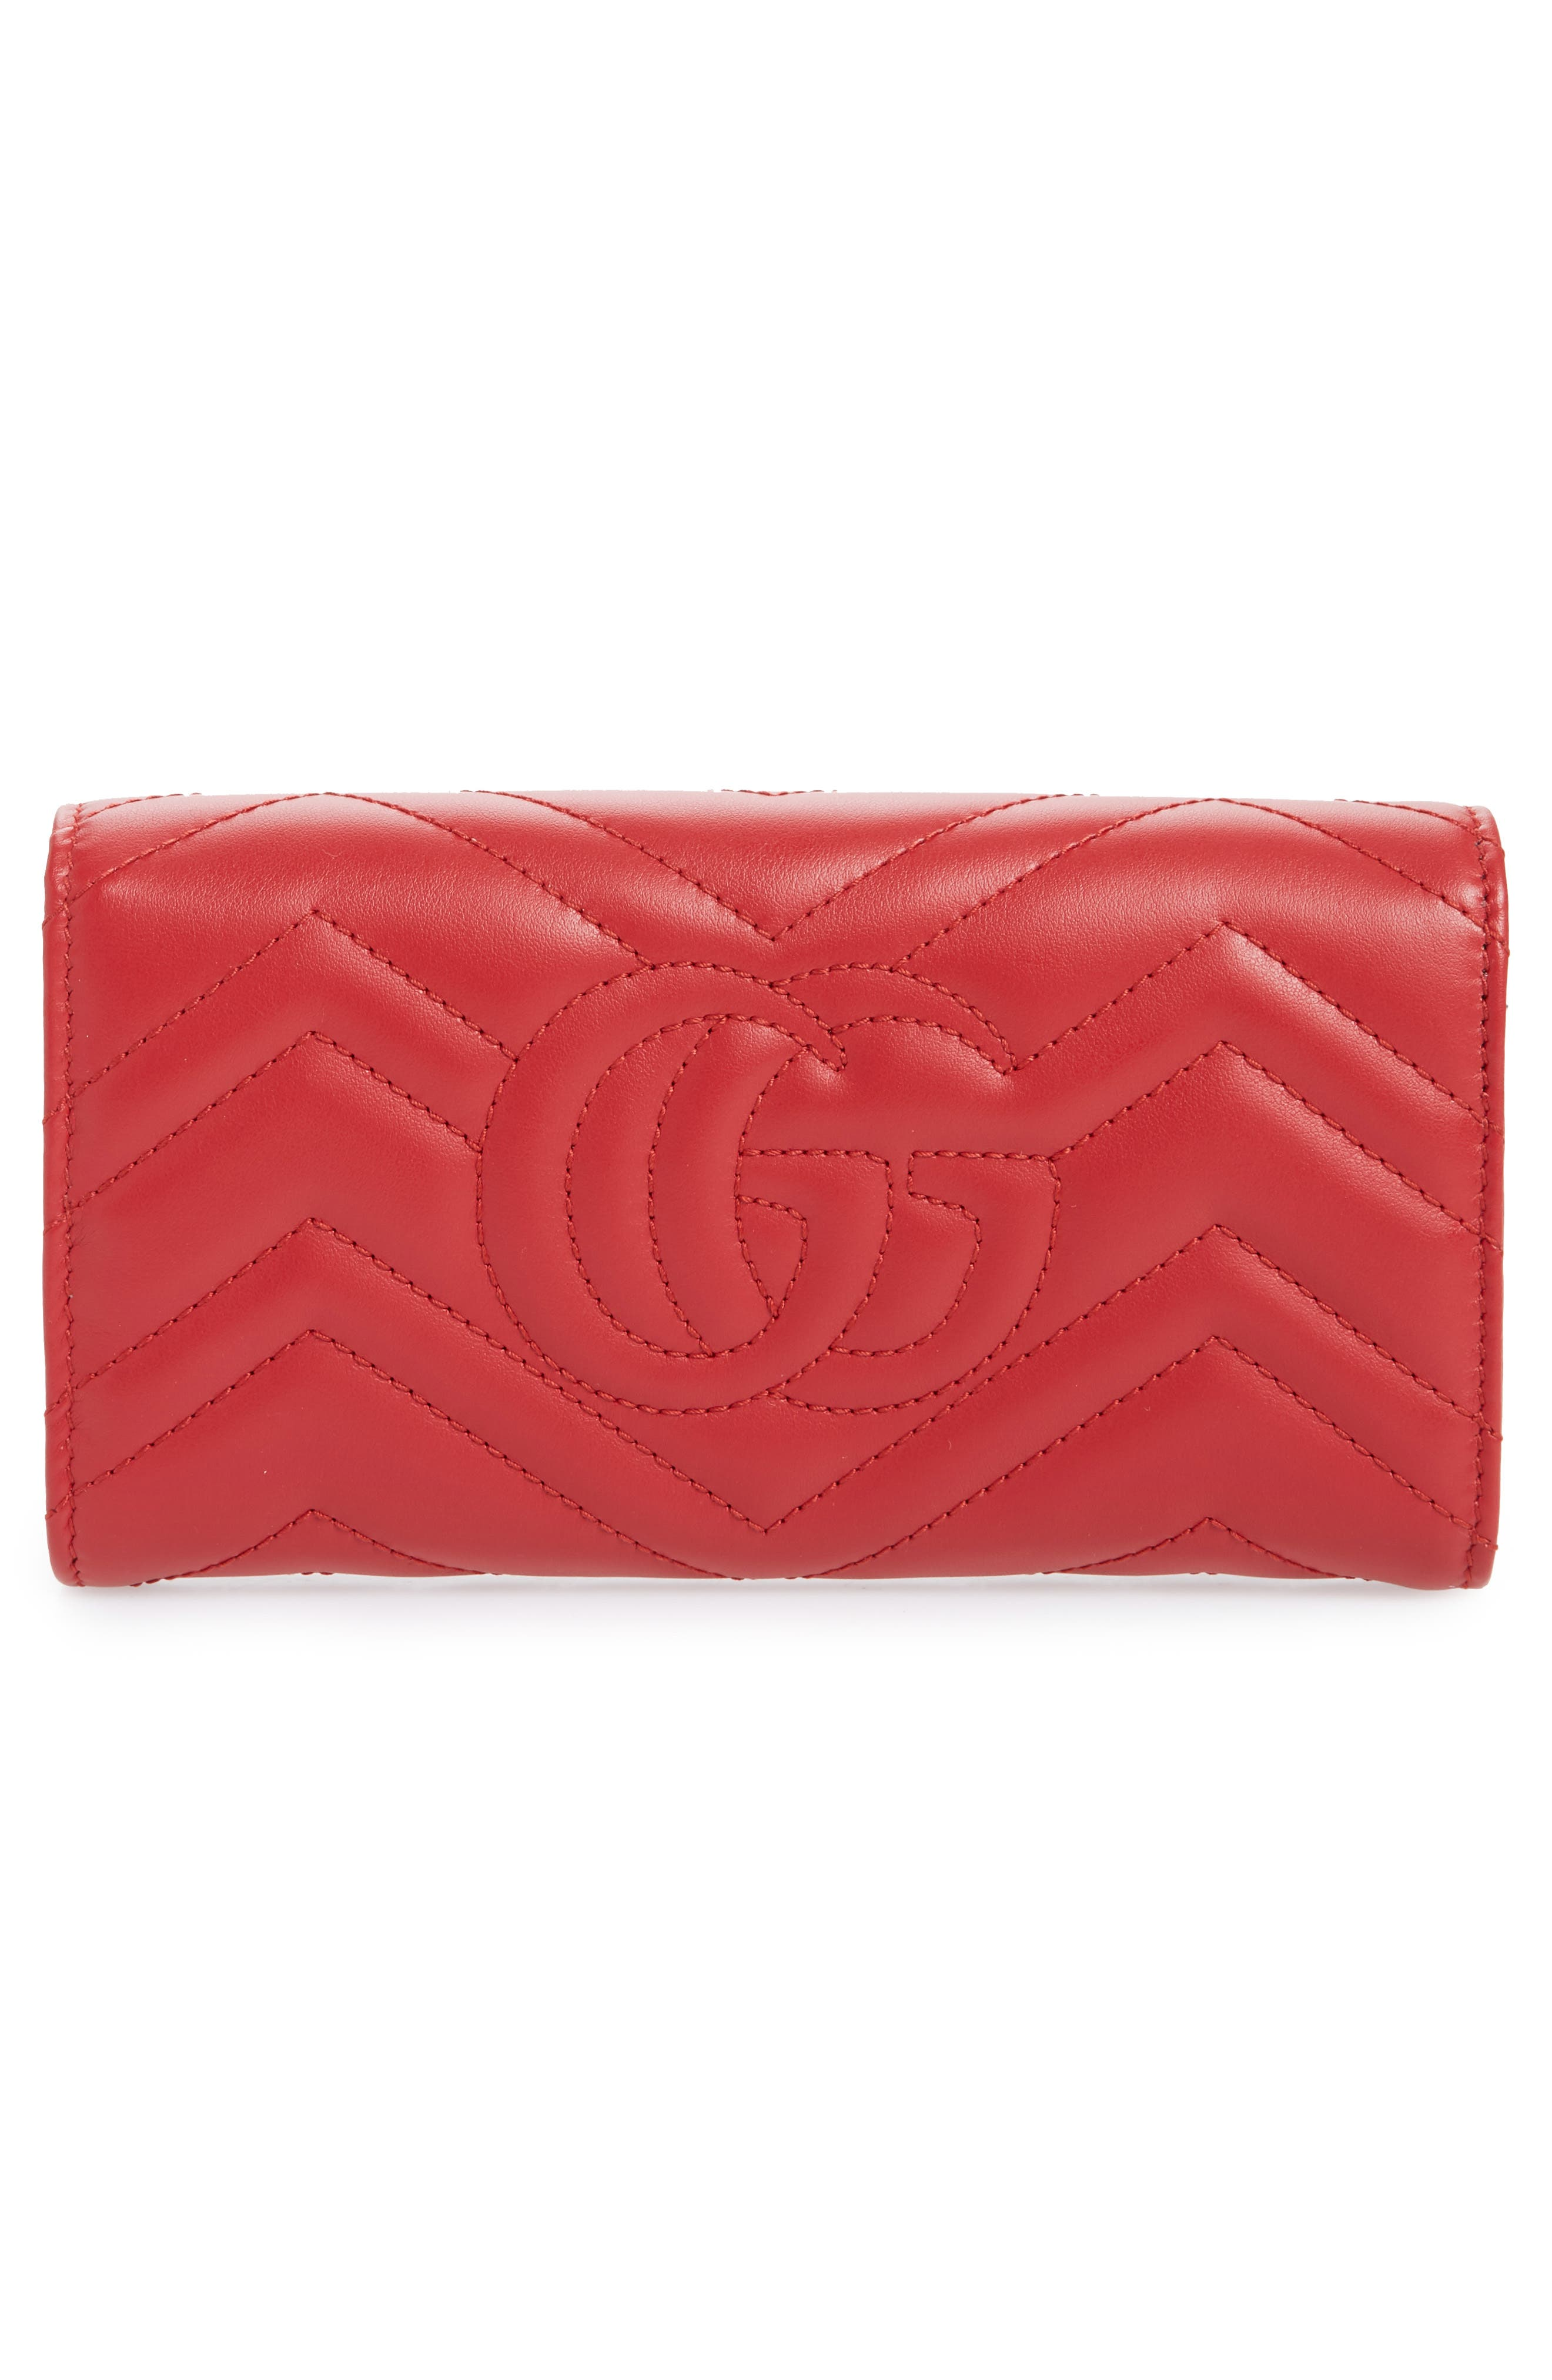 Marmont 2.0 Leather Continental Wallet,                             Alternate thumbnail 3, color,                             HIBISCUS RED